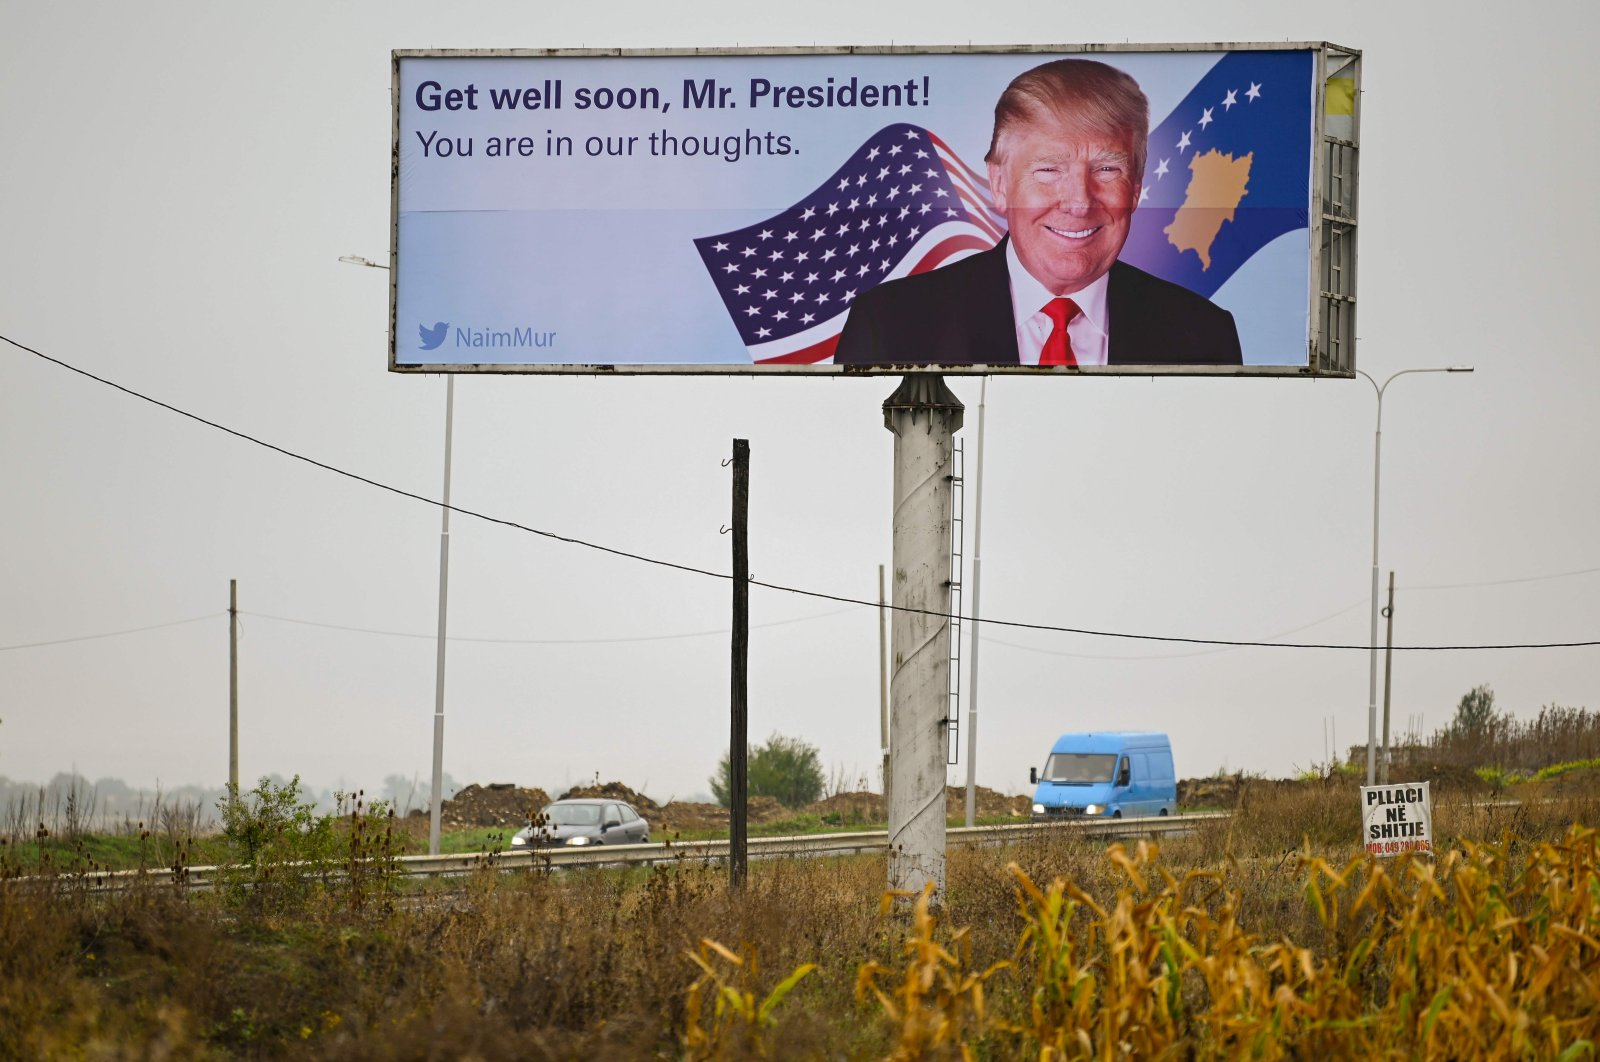 Traffic flows past a billboard wishing U.S. President Donald Trump a speedy recovery from COVID-19, near Pristina International Airport, Kosovo, Oct. 7, 2020. (AFP Photo)